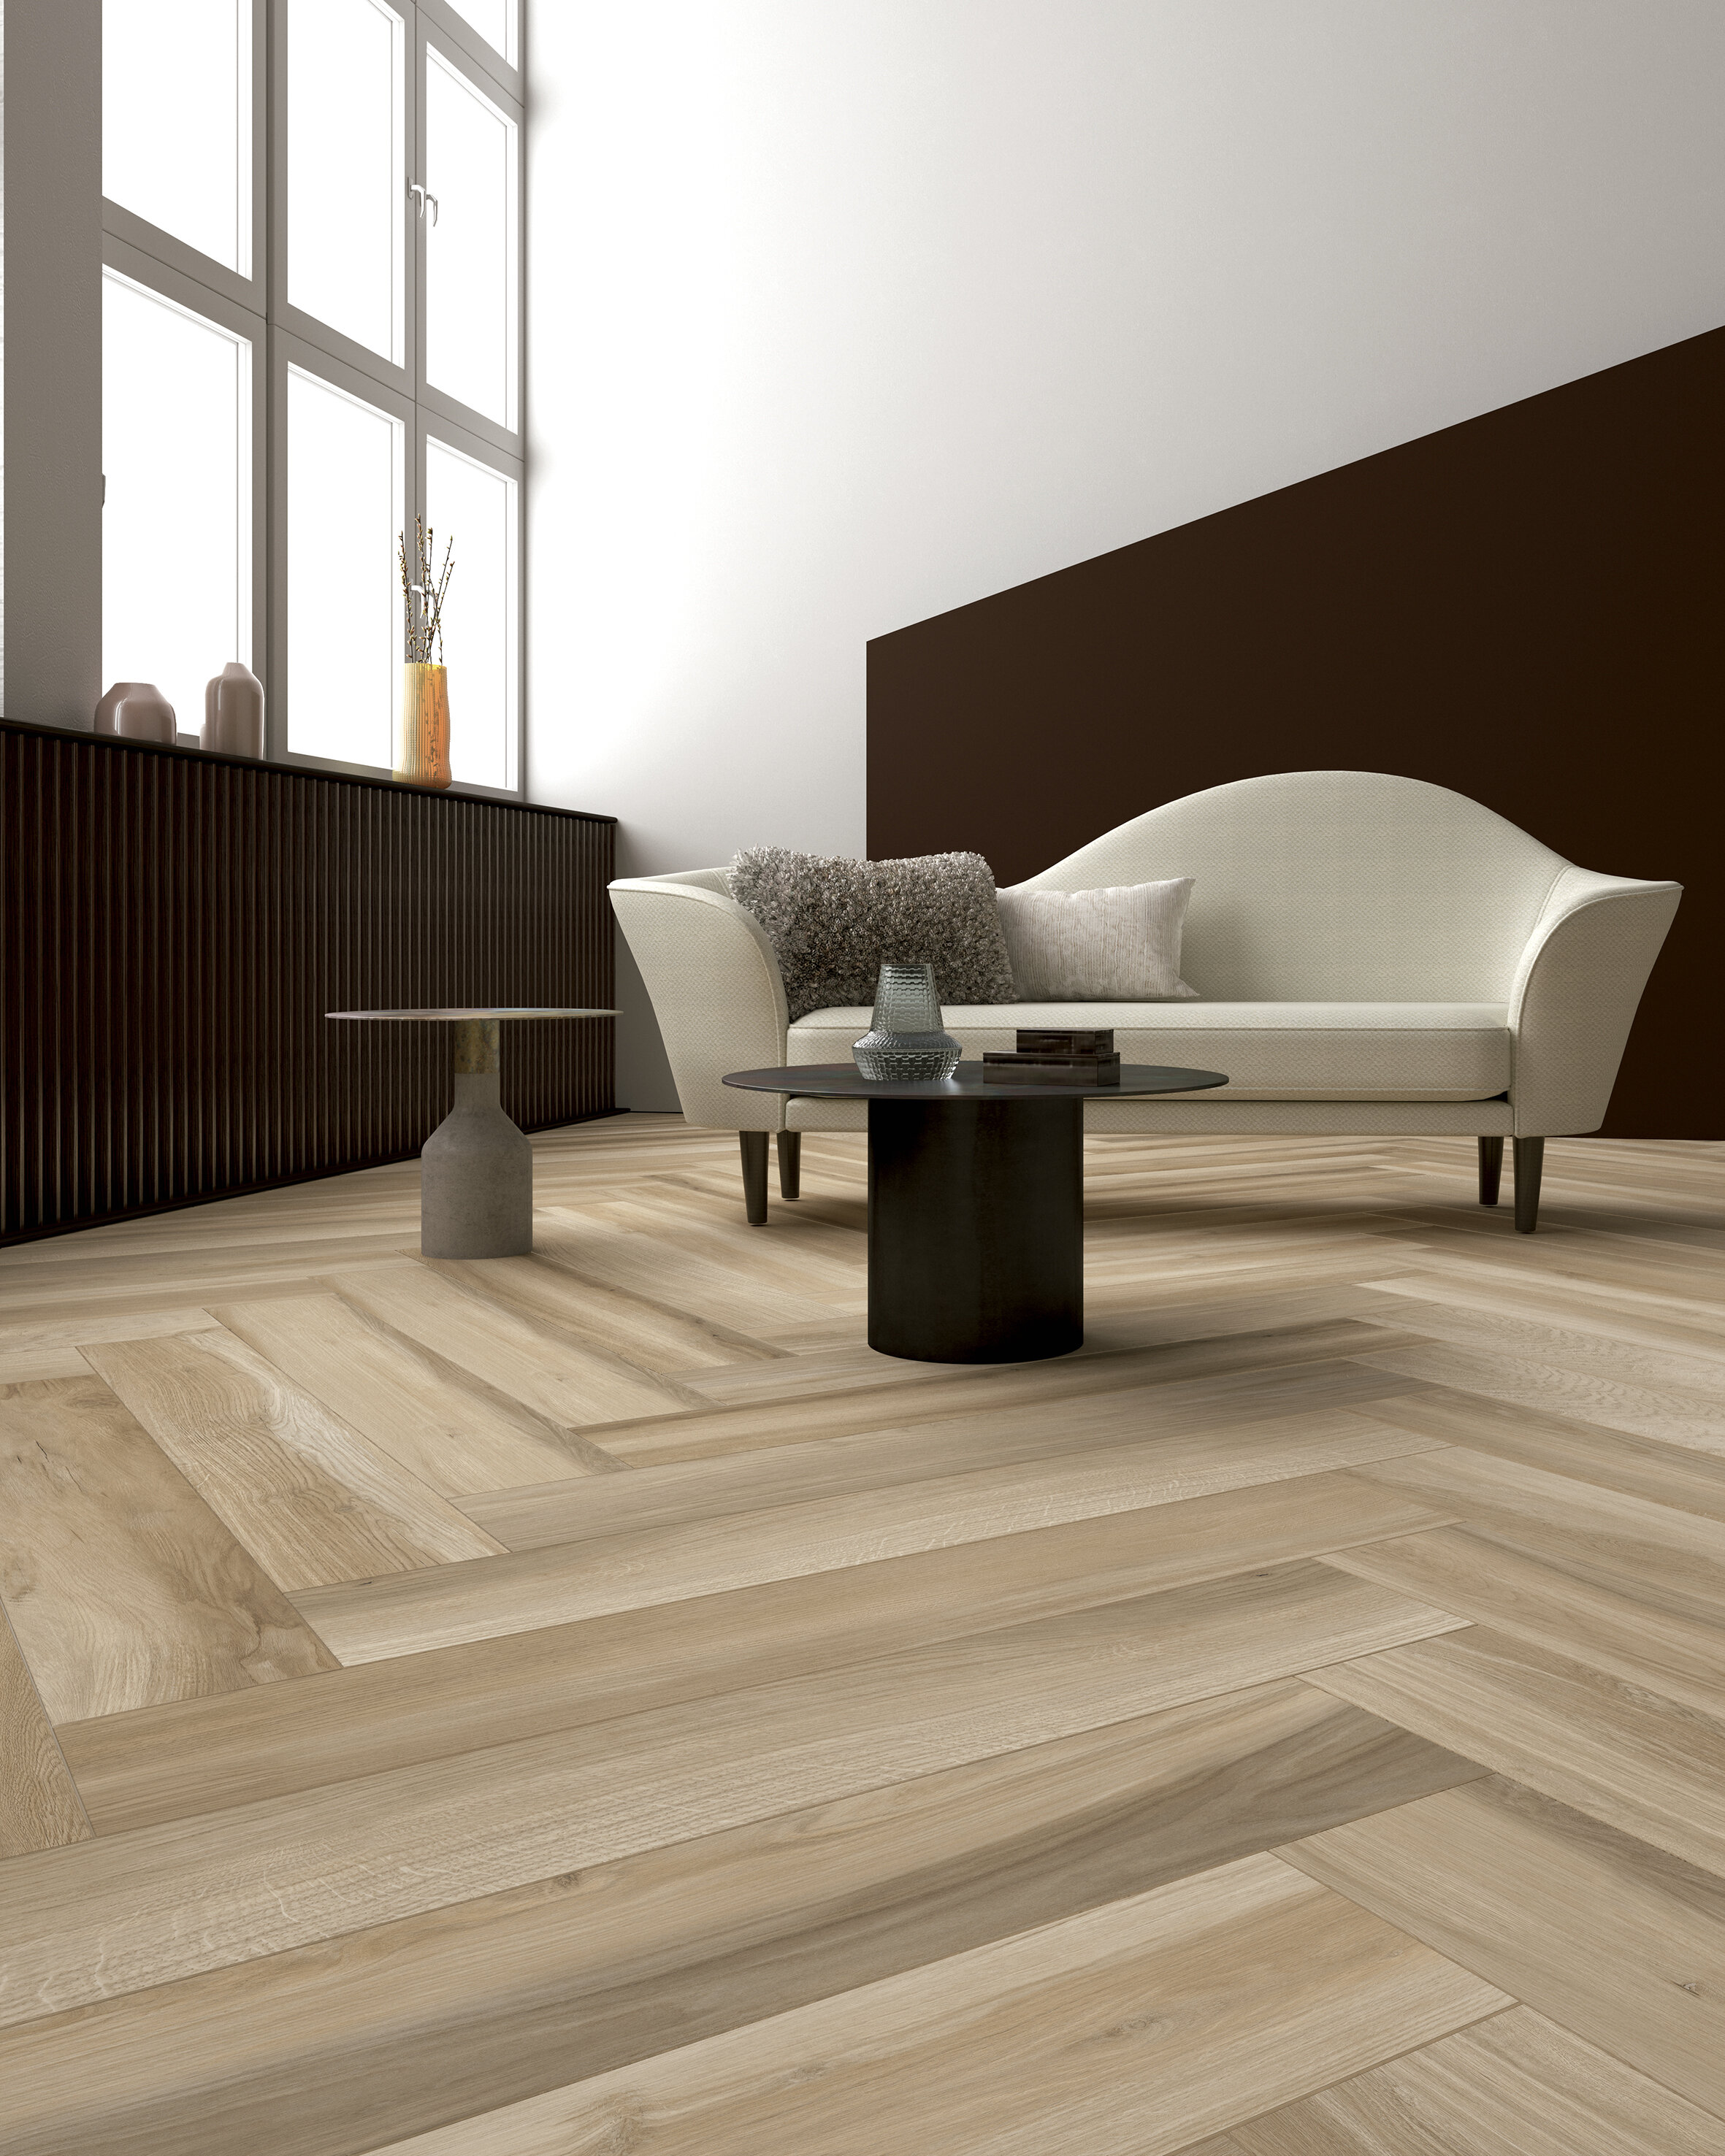 Wooden Padron Flooring And Design Center Tile In Palm